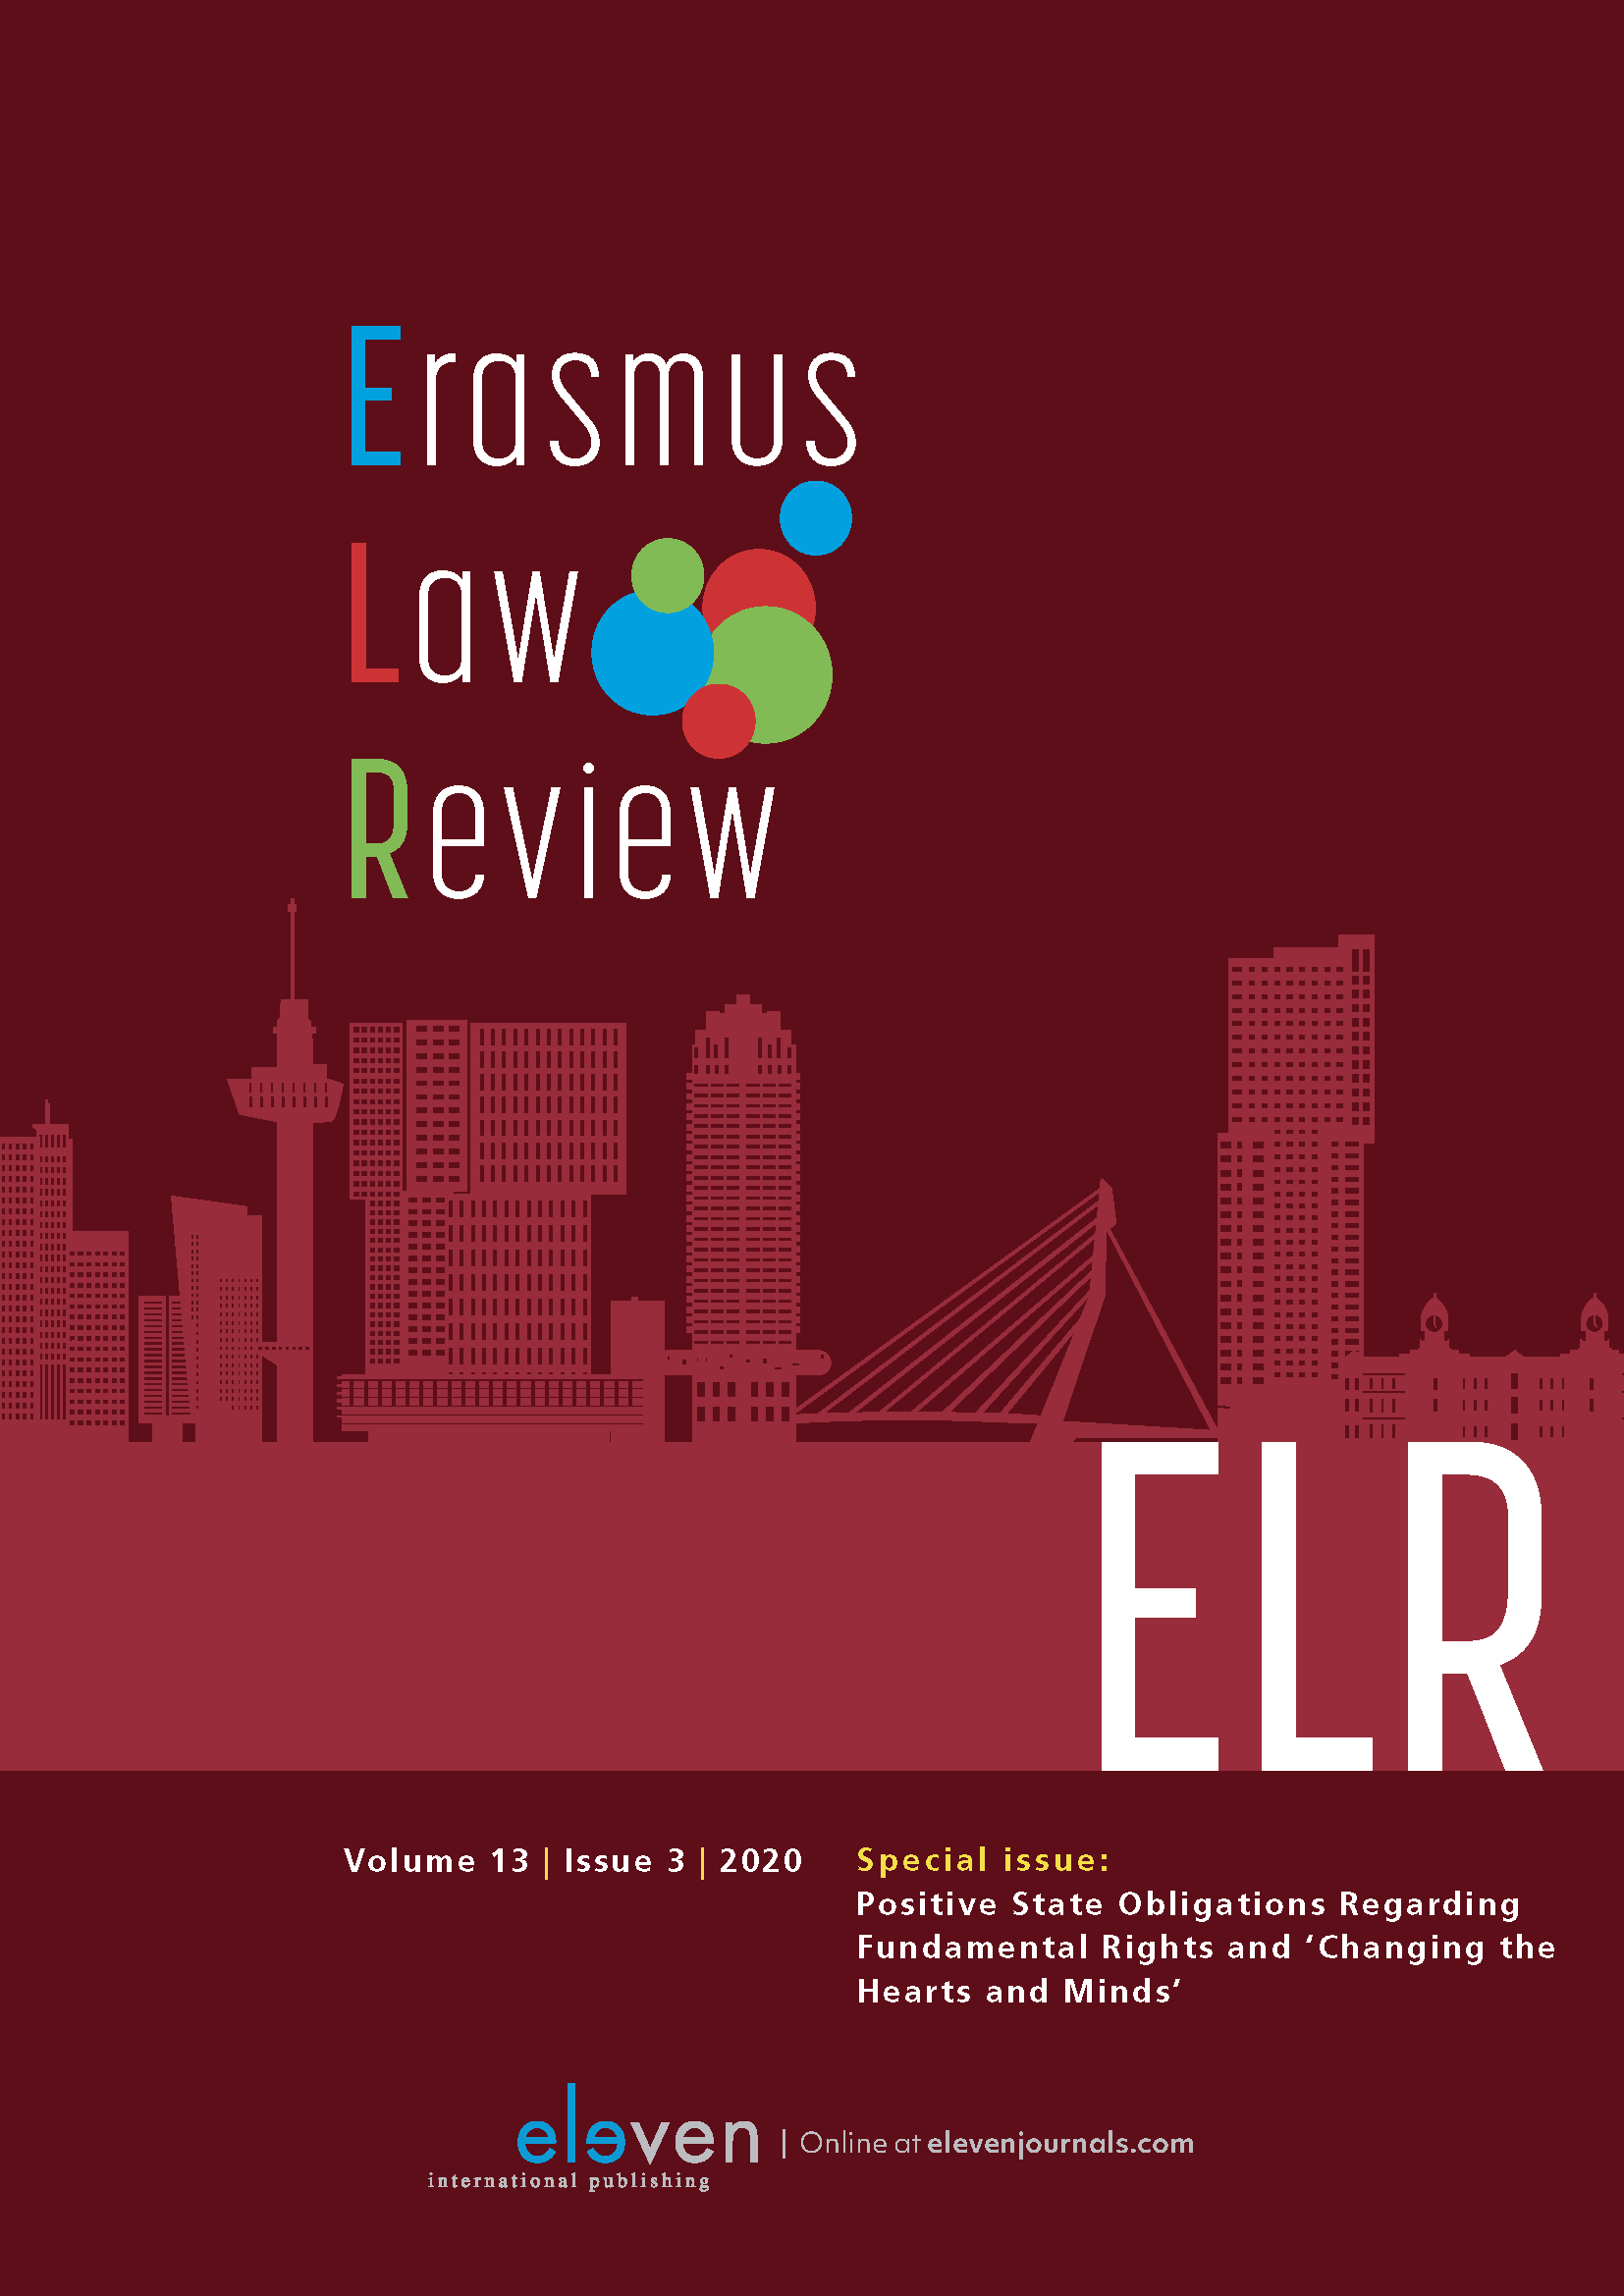 ELR volume 9 issue 2